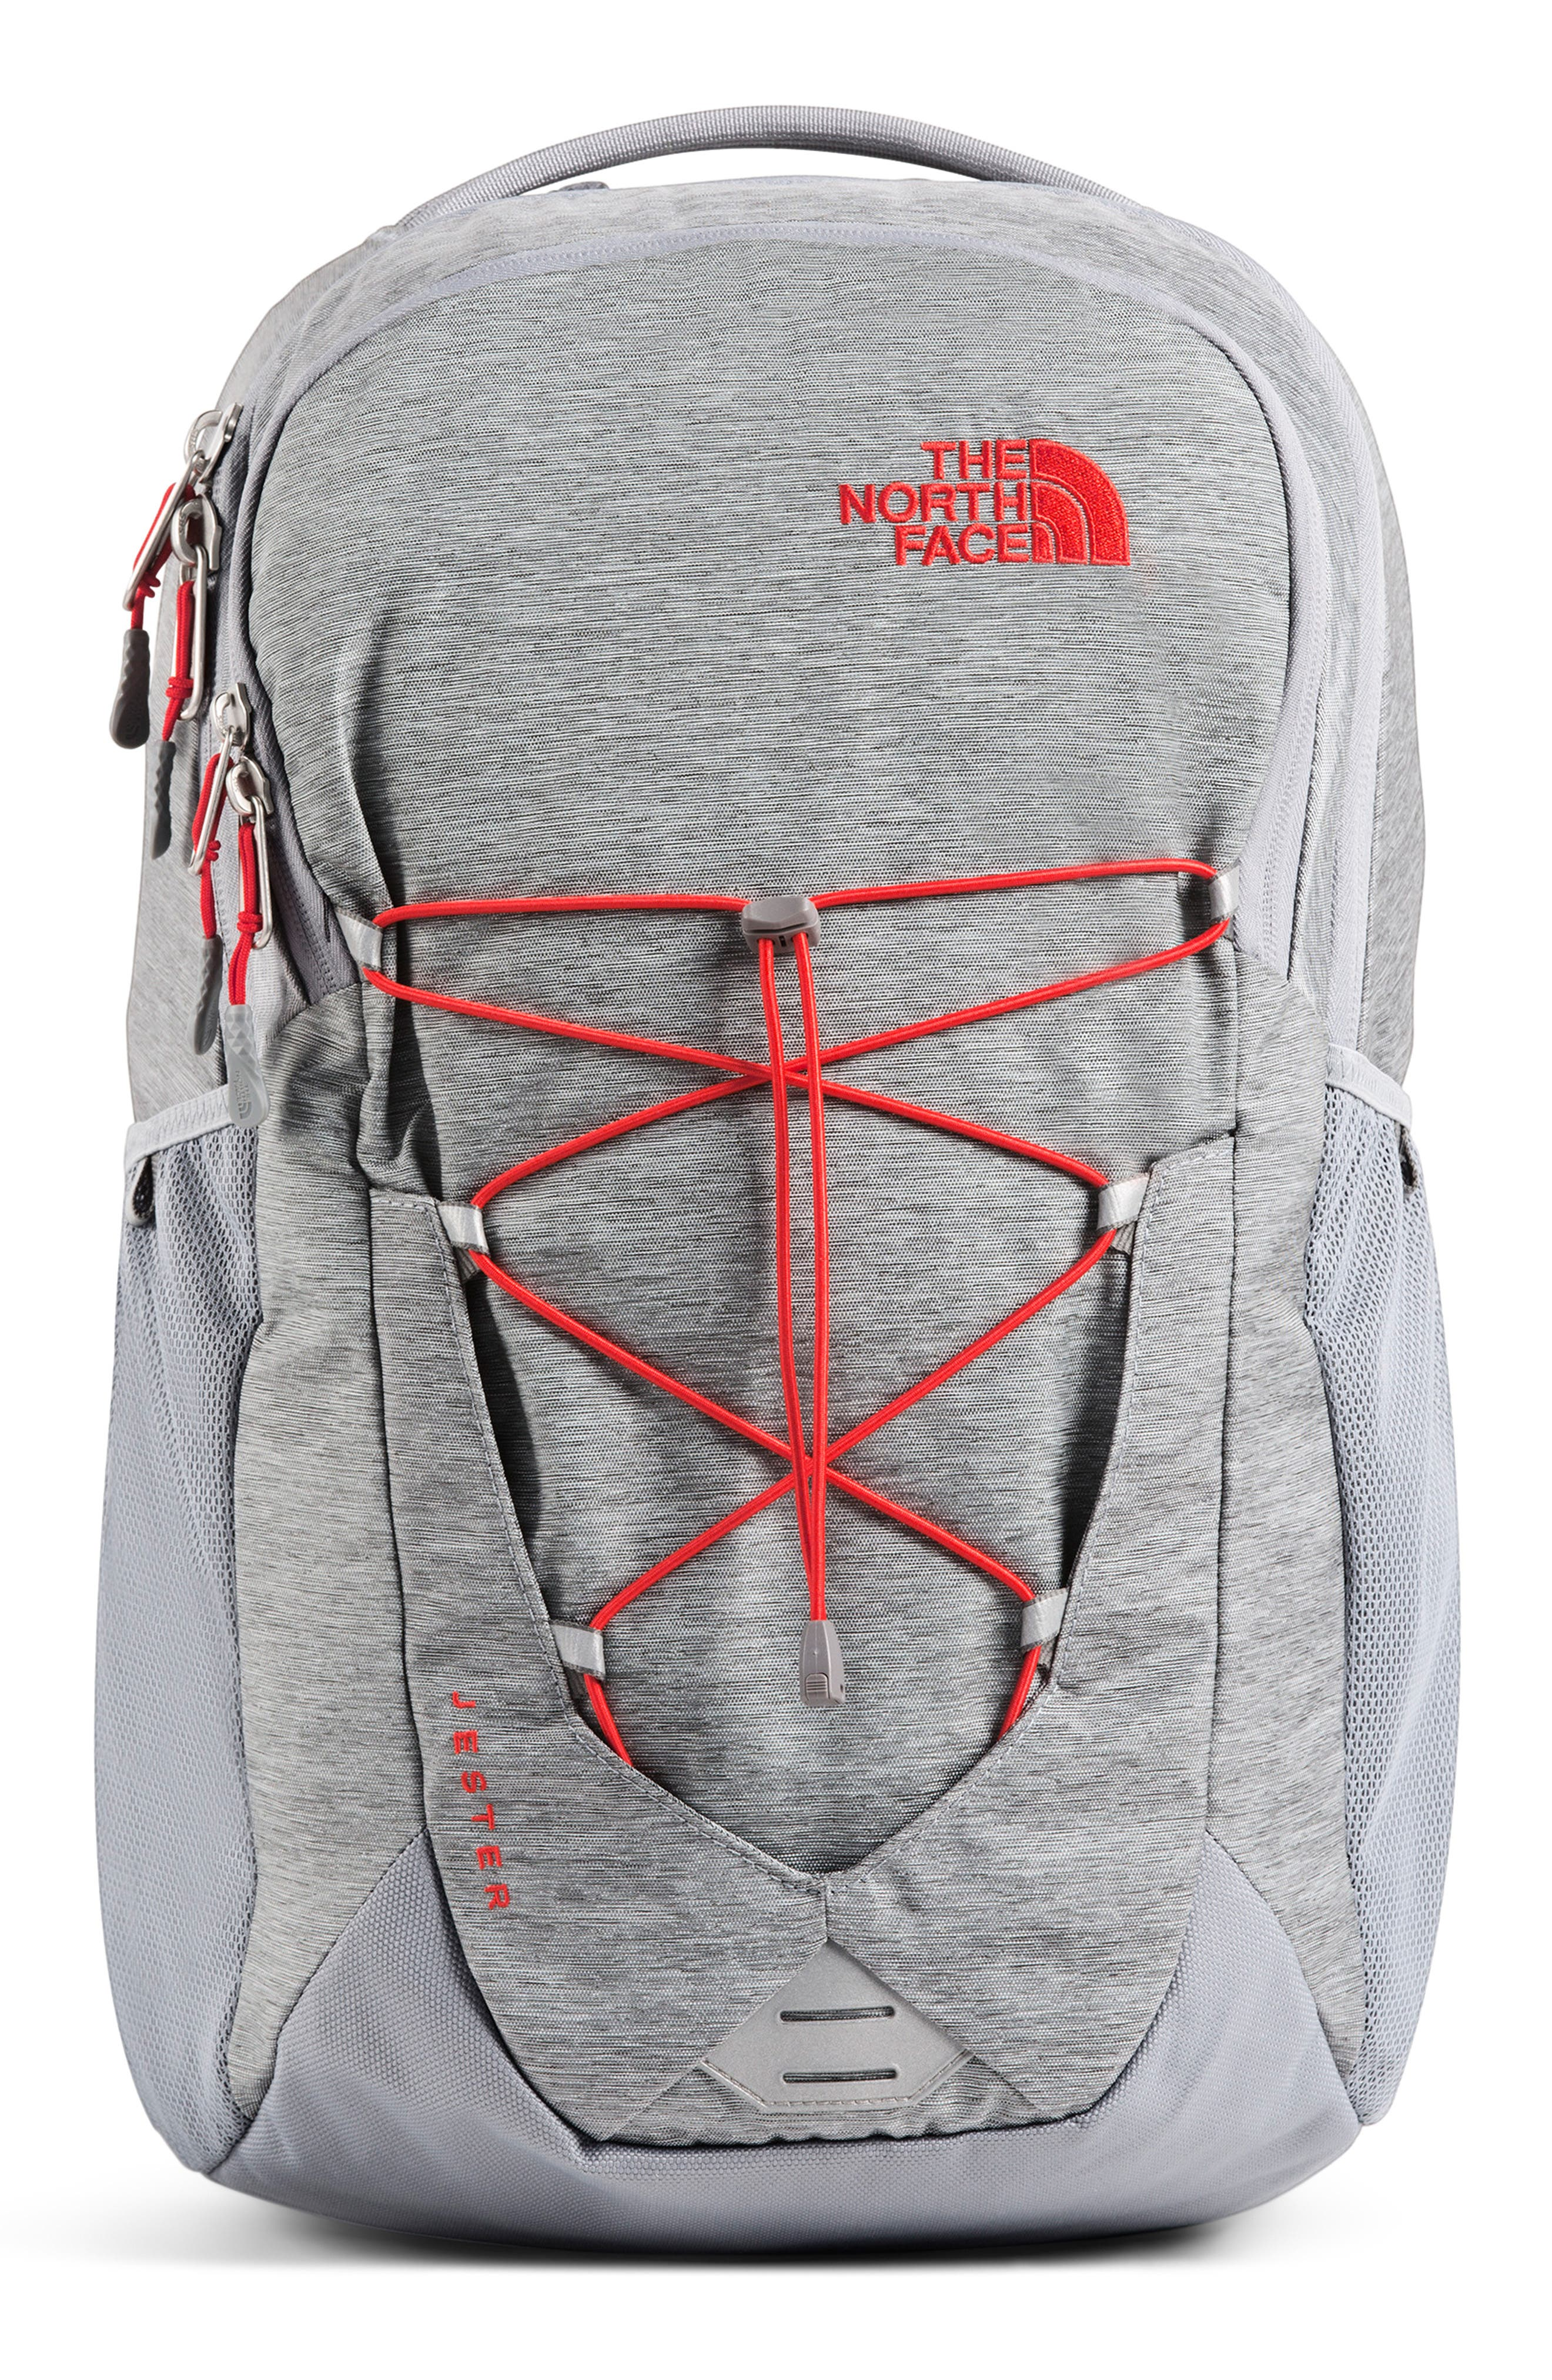 THE NORTH FACE Jester Backpack, Main, color, GREY DARK HEATHER/FIERY RED